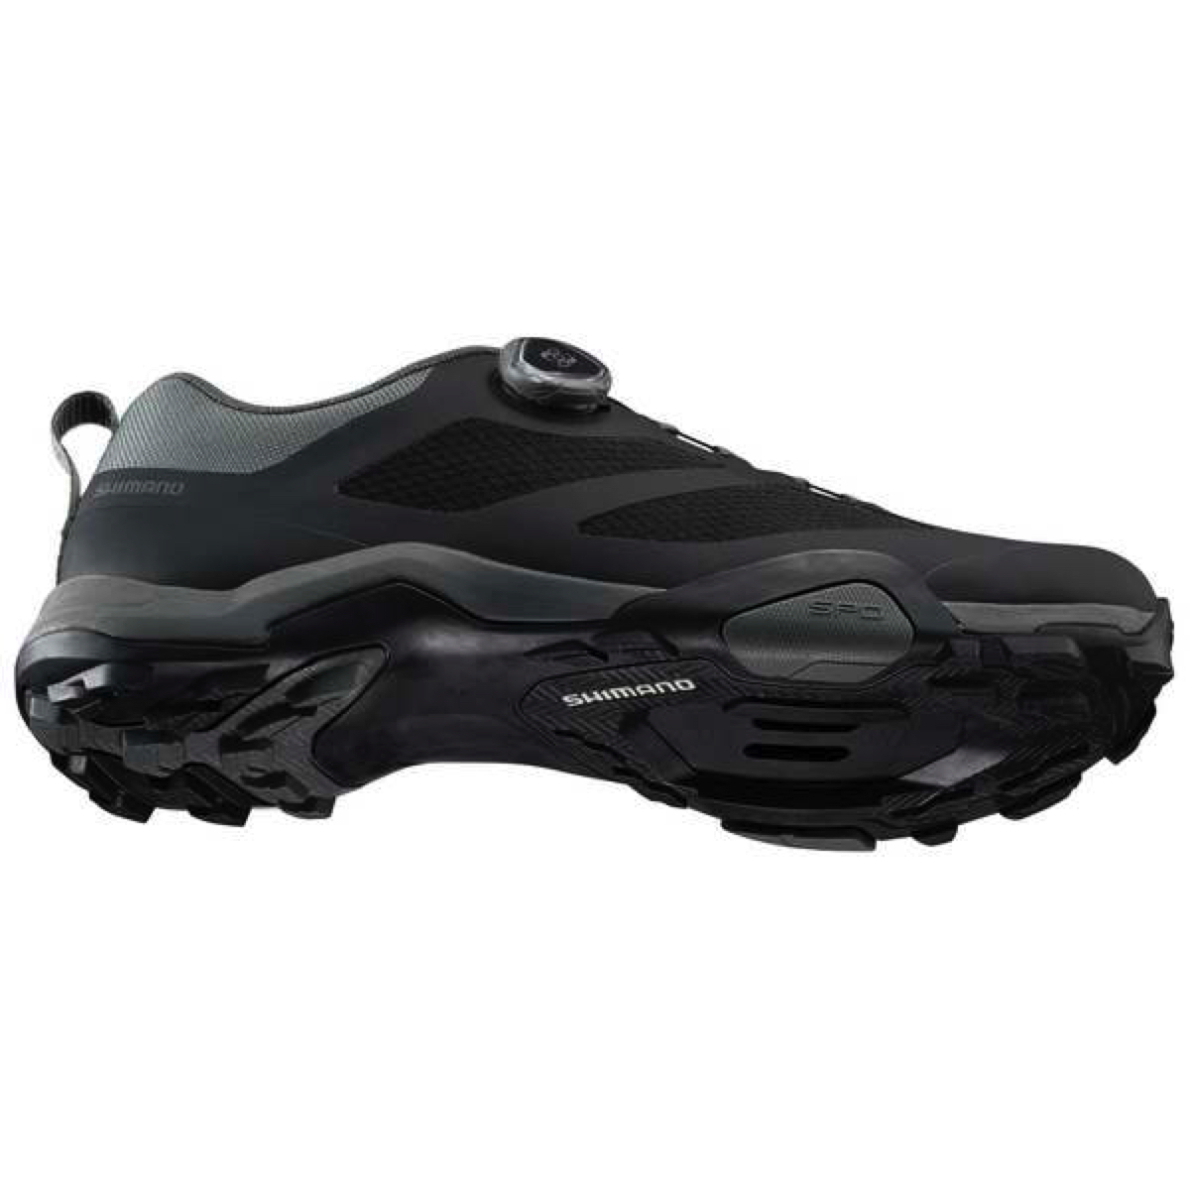 Bicycle Shoes SH-MT700SL1